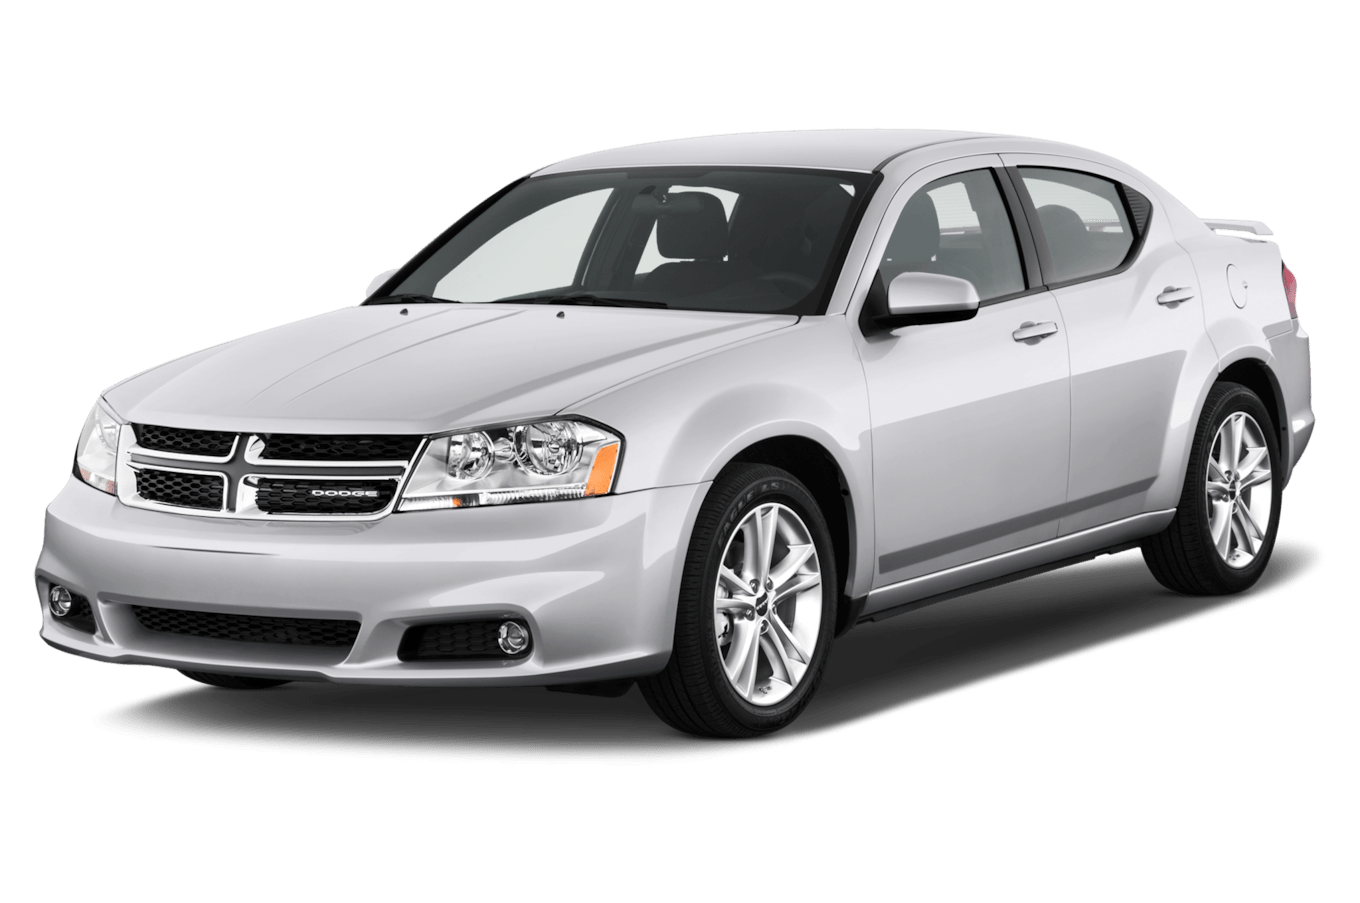 small resolution of new 2012 dodge caravan and chrysler town country 36 fuse box 2012 dodge avenger new 2012